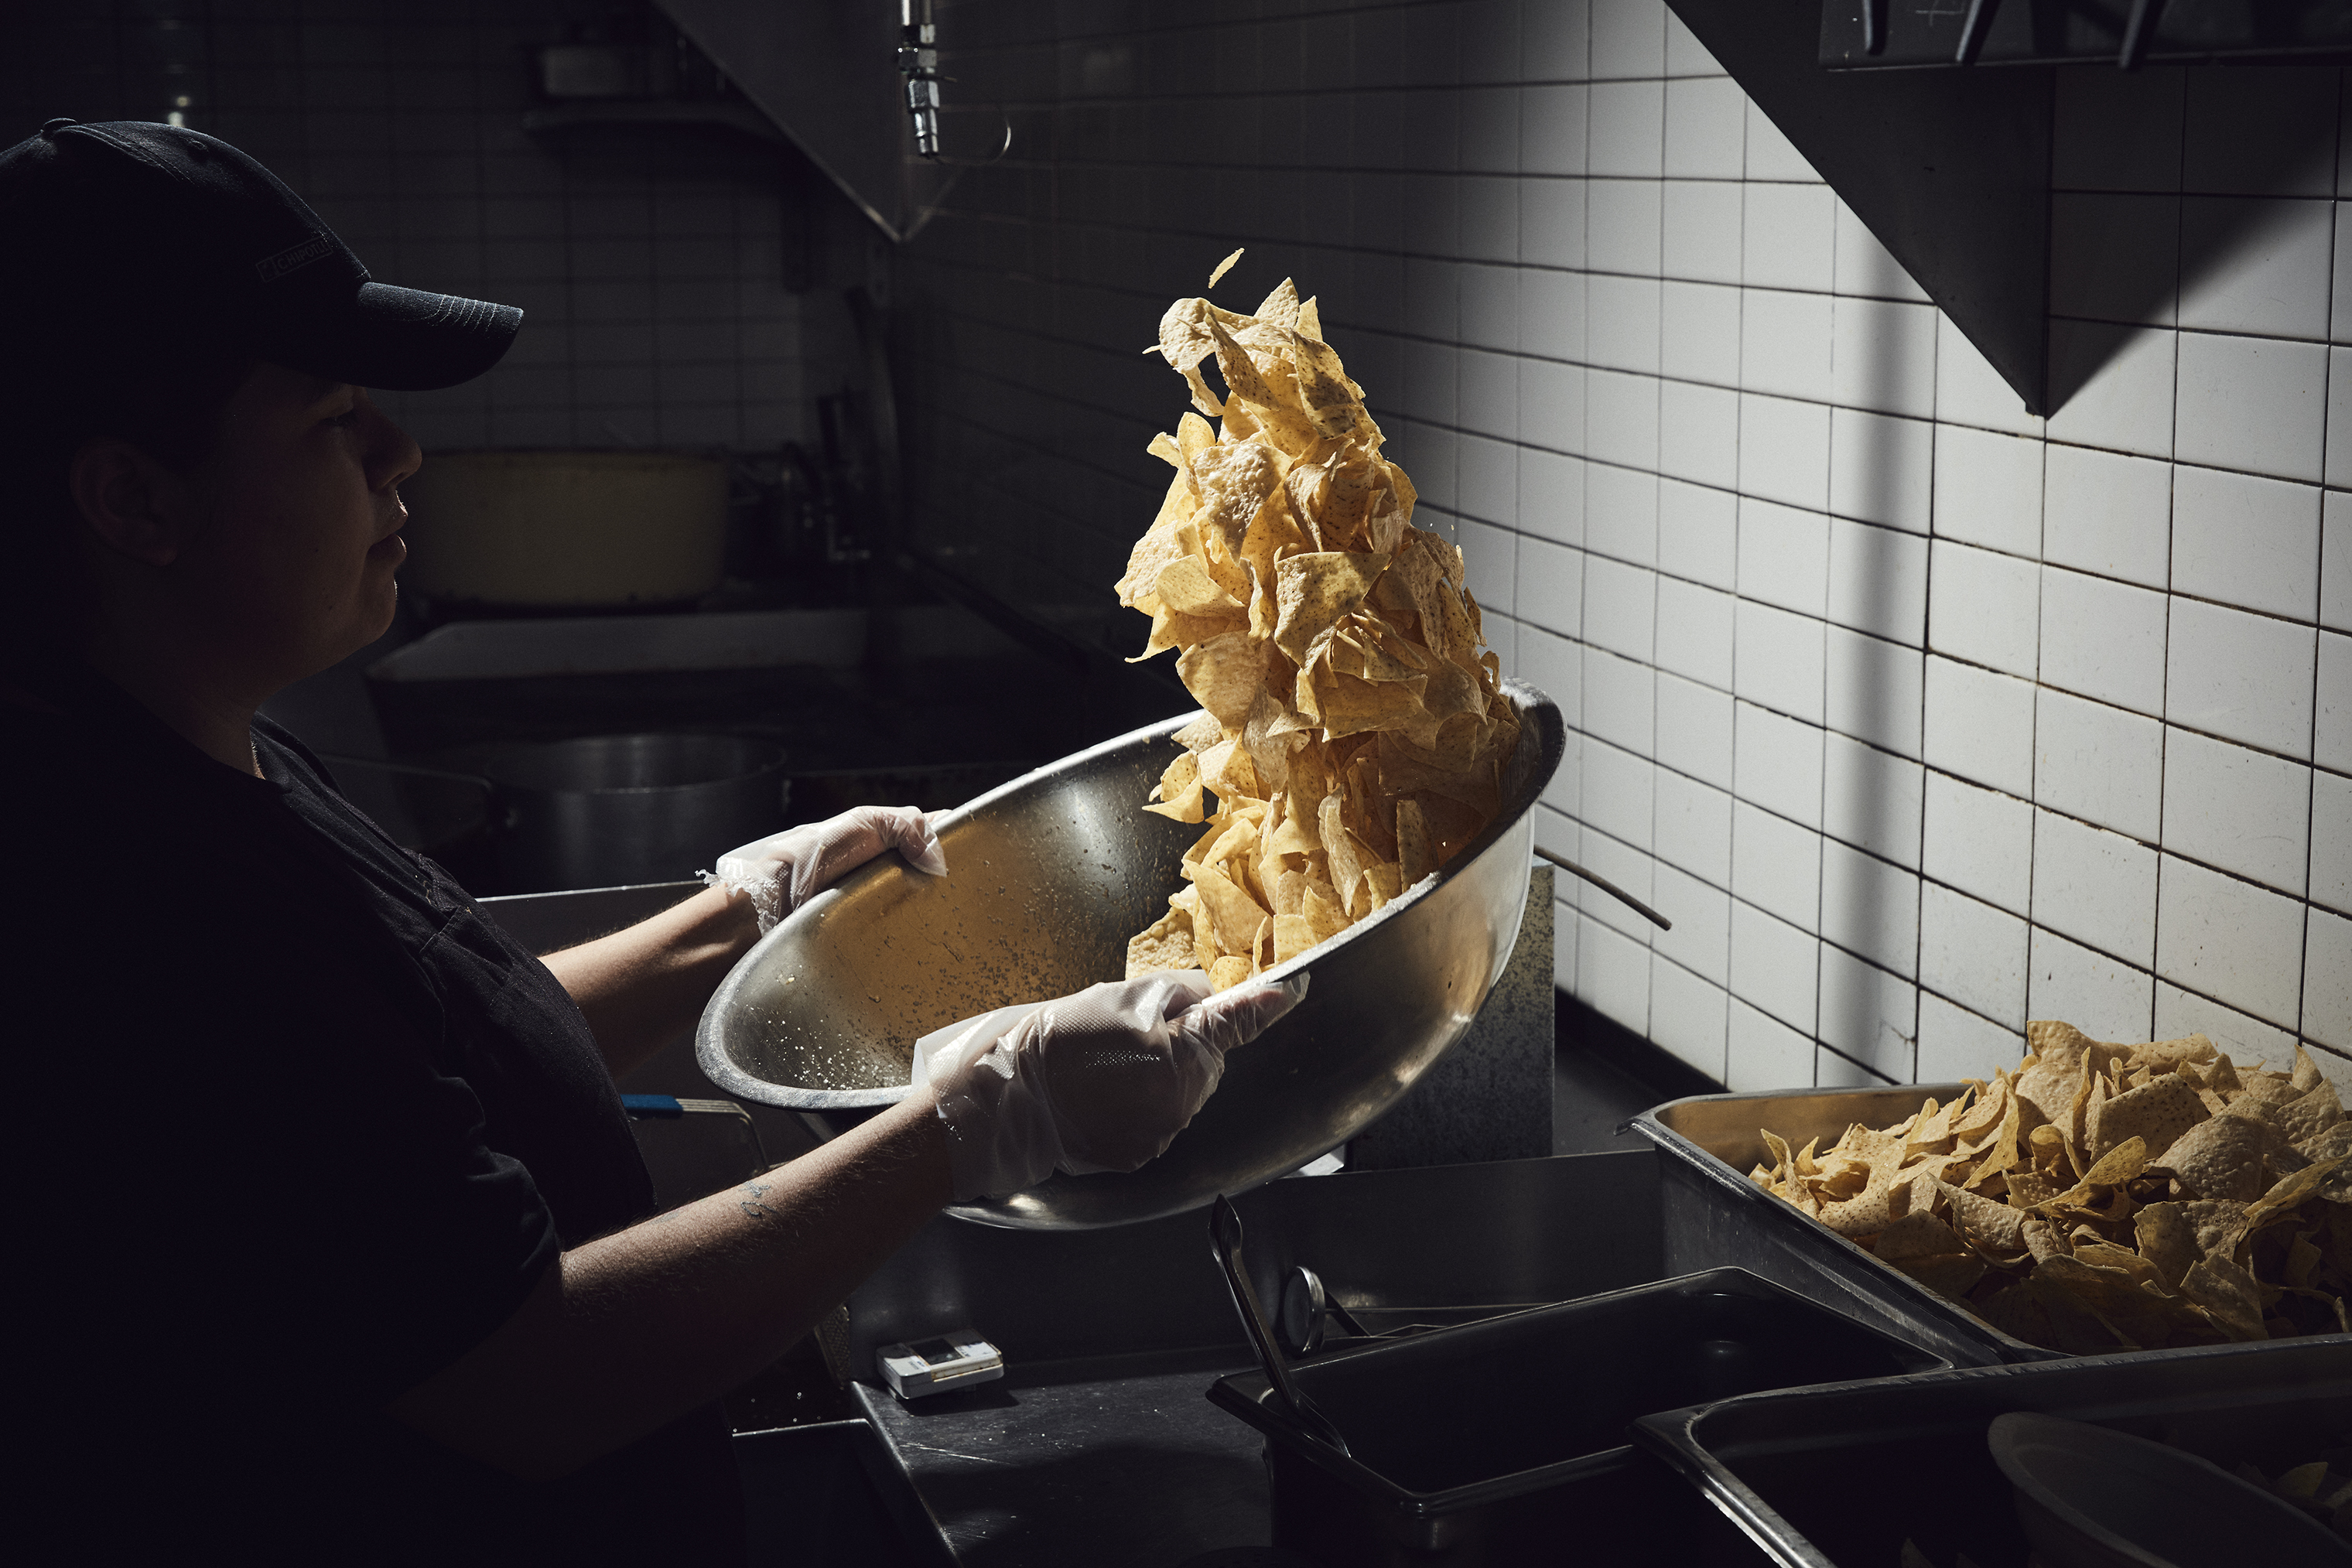 A Chipotle employee seasons chips at a location in Newport Beach, Calif. The company, founded in 1993, now has roughly 70,000 employees and 2,450 locations.